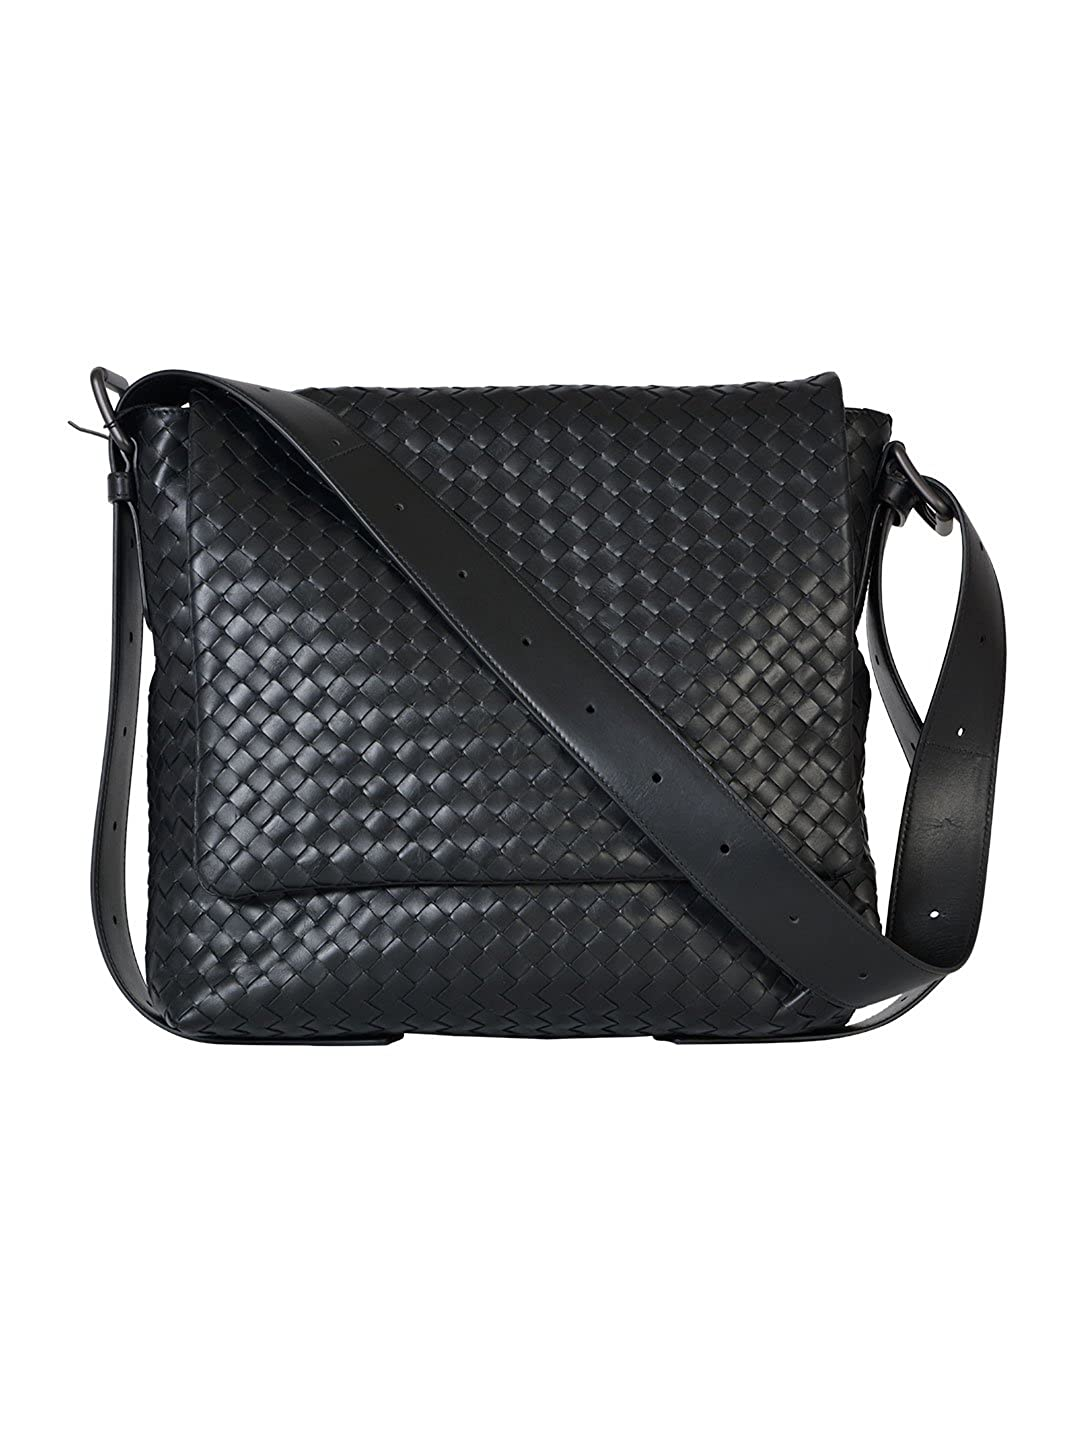 636009e50d800 Bottega Veneta Men s 406275VQ1311000 Black Leather Messenger Bag   Amazon.co.uk  Clothing